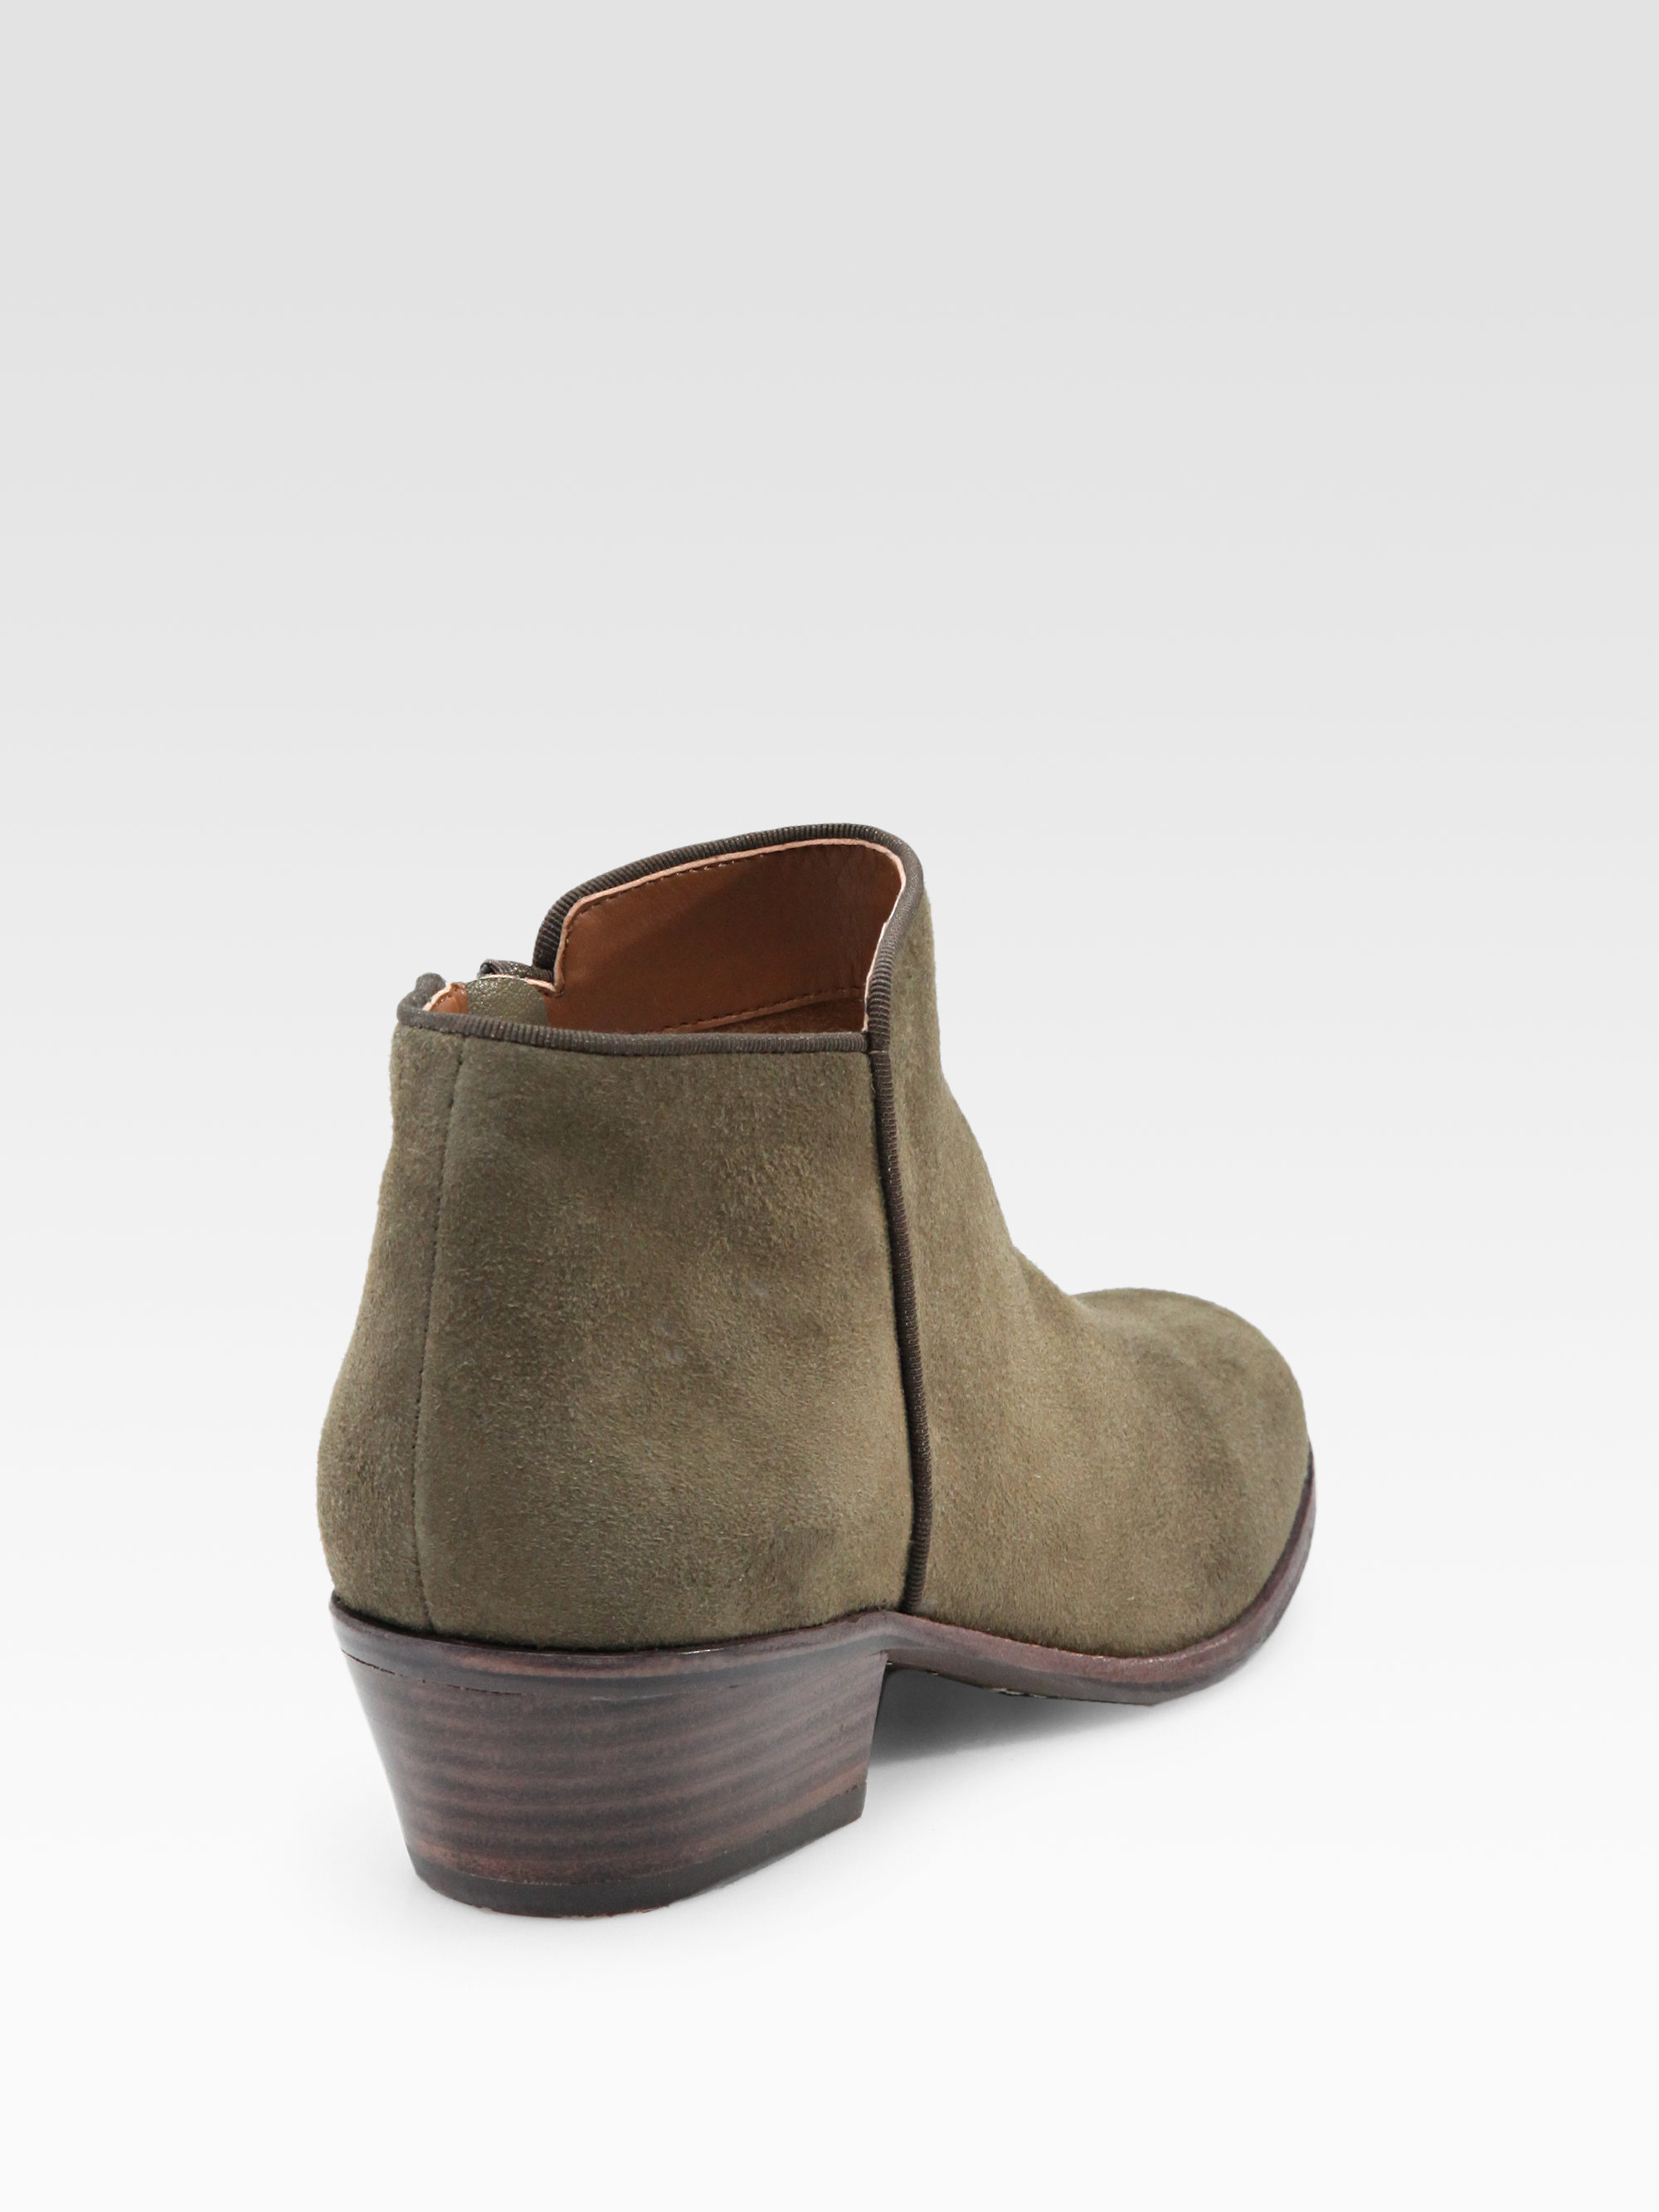 Sam edelman Petty Lowcut Suede Ankle Boots in Natural | Lyst